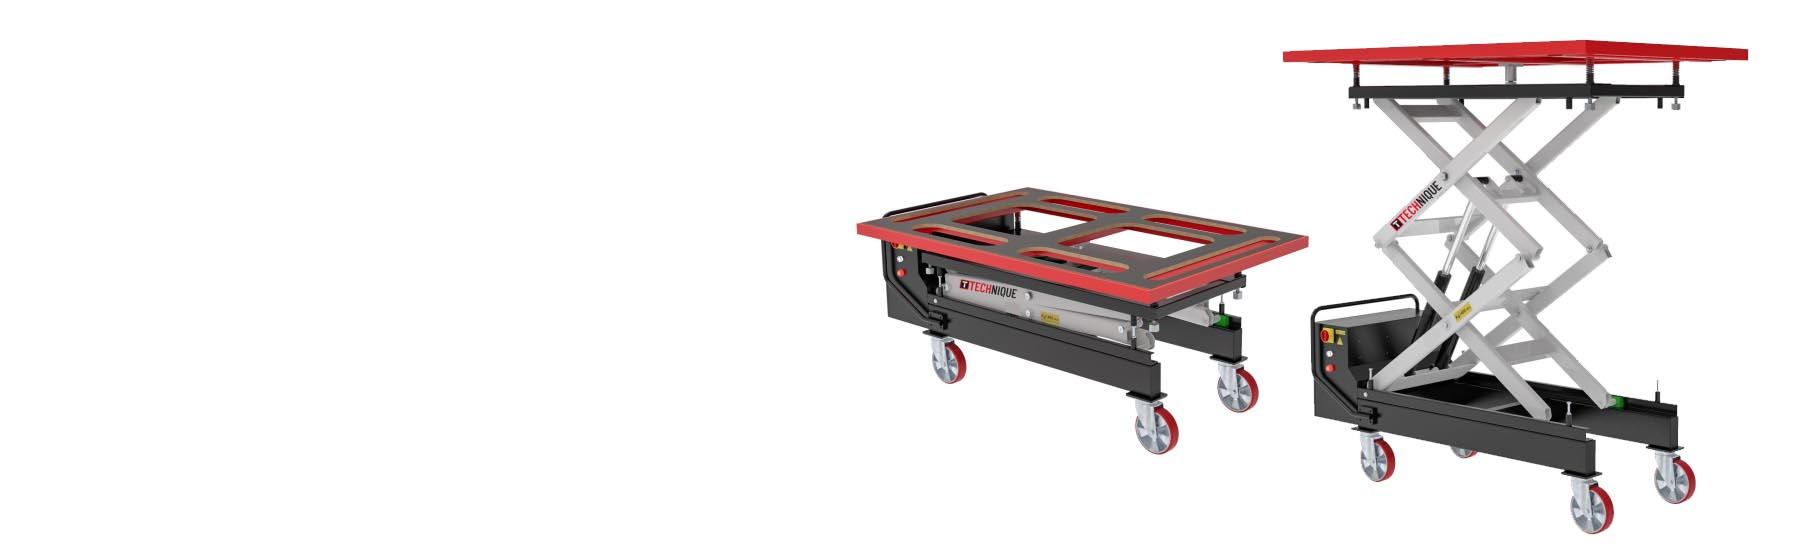 Technique T3314, EV battery lifting table, electric vehicle battery lifting table, EV PHEV servicing